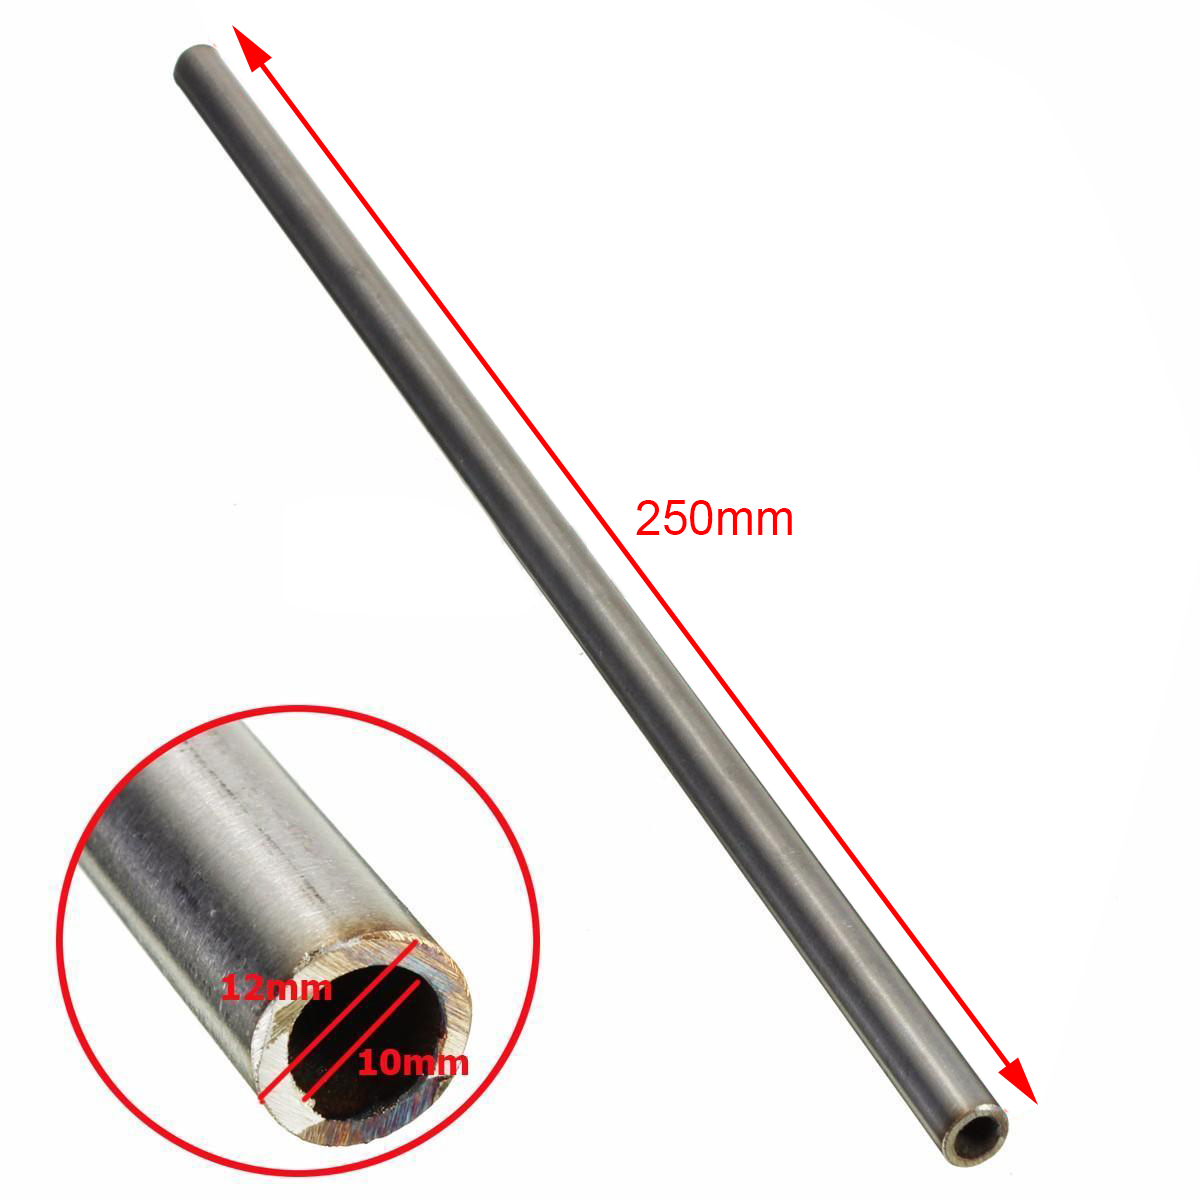 1pc 304 Stainless Steel Capillary Tube Pipe 12mm OD 10mm ID 250mm Length Silver For Home Industry Tools 22 12 200mm od id length brass seamless pipe tube of astm c28000 cuzn40 cz109 c2800 h59 hollow bar iso certified industry